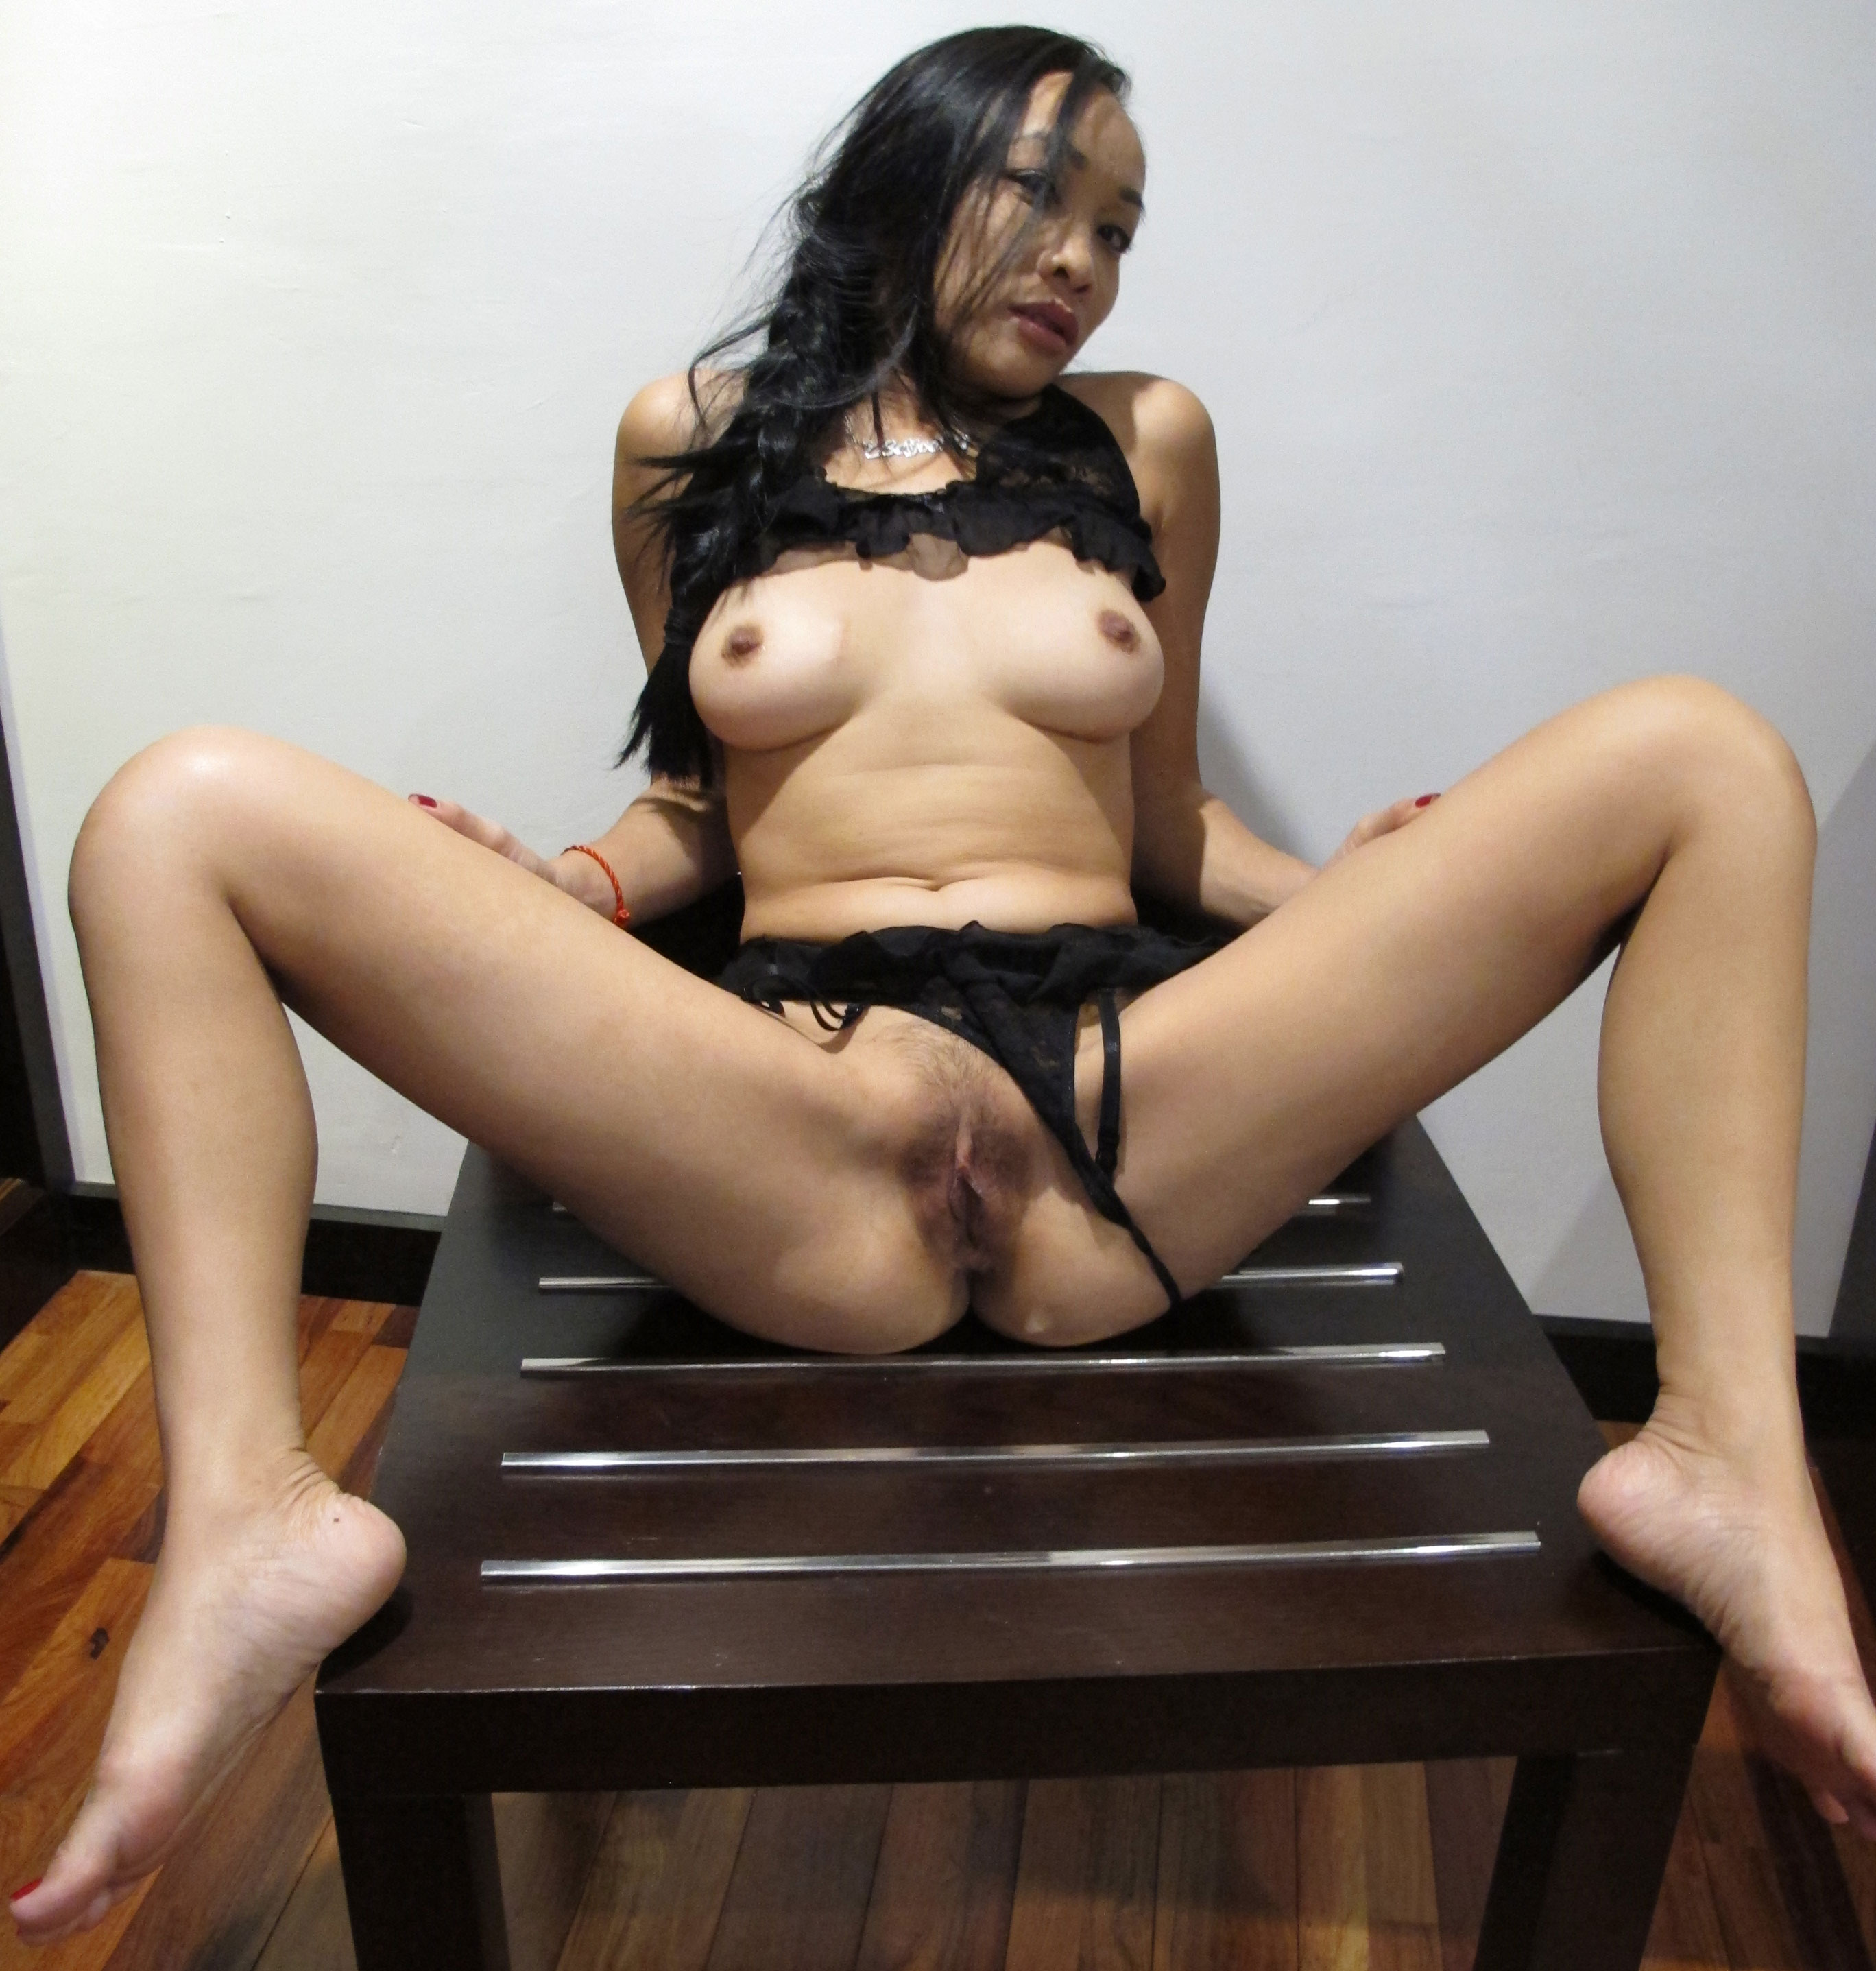 streching-handjob-nudity-asian-tube-cream-pie-gifs